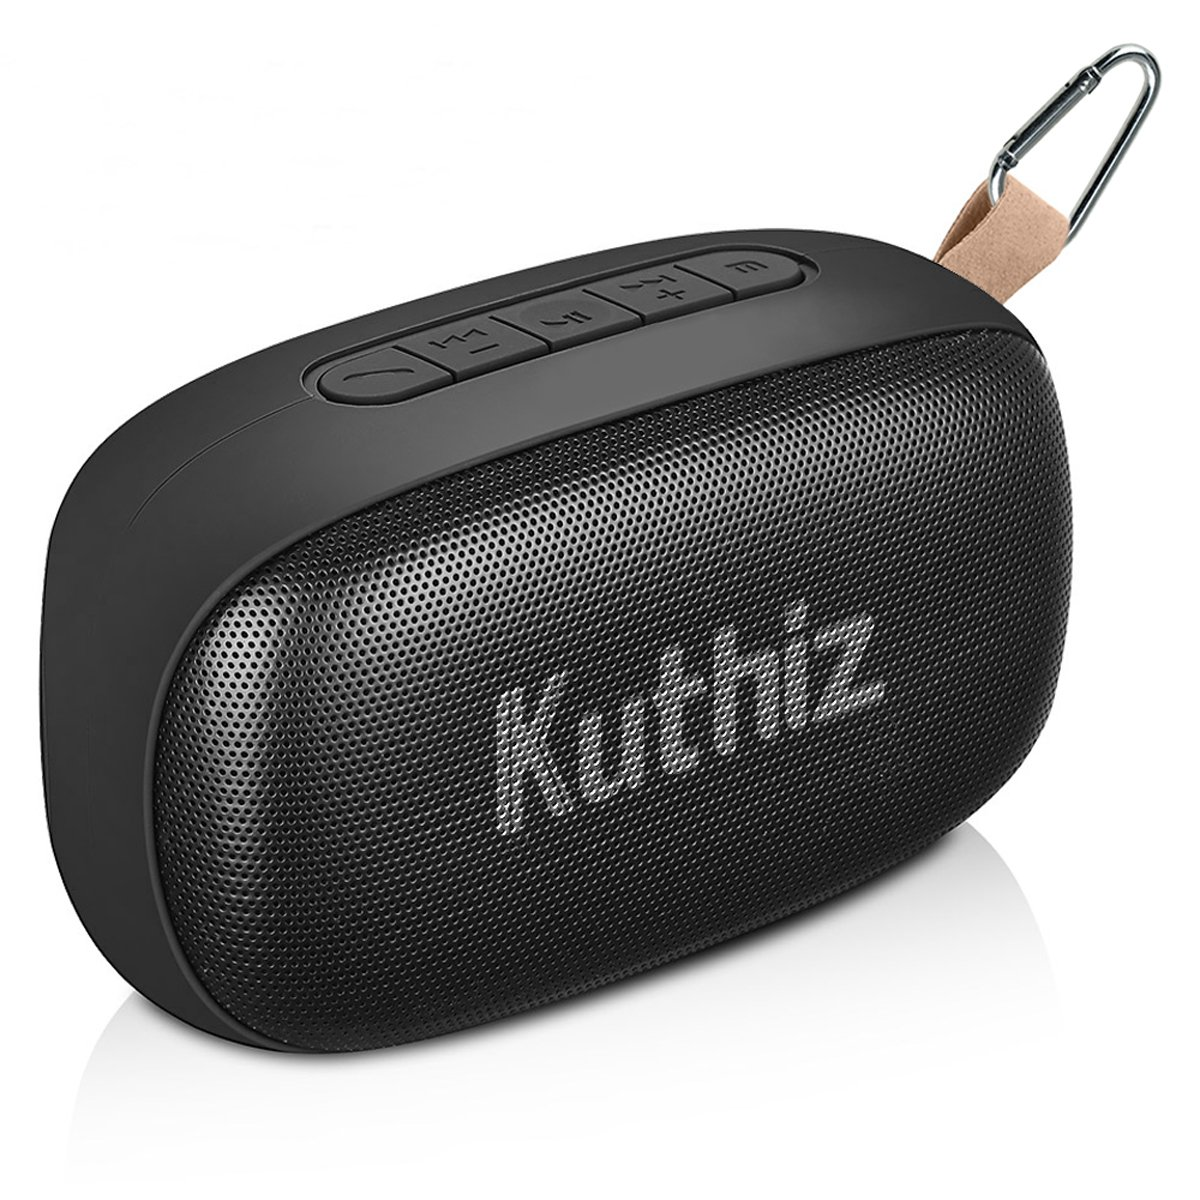 Kuthiz Portable Bluetooth Speakers with Stereo Sound and Enhanced Bass, IPX5 Waterproof with V4.2, Handsfree Call, AUX Line, Outdoor Home Mini Speaker for iPhone Andriod Tablet PC Smartphone (Black)